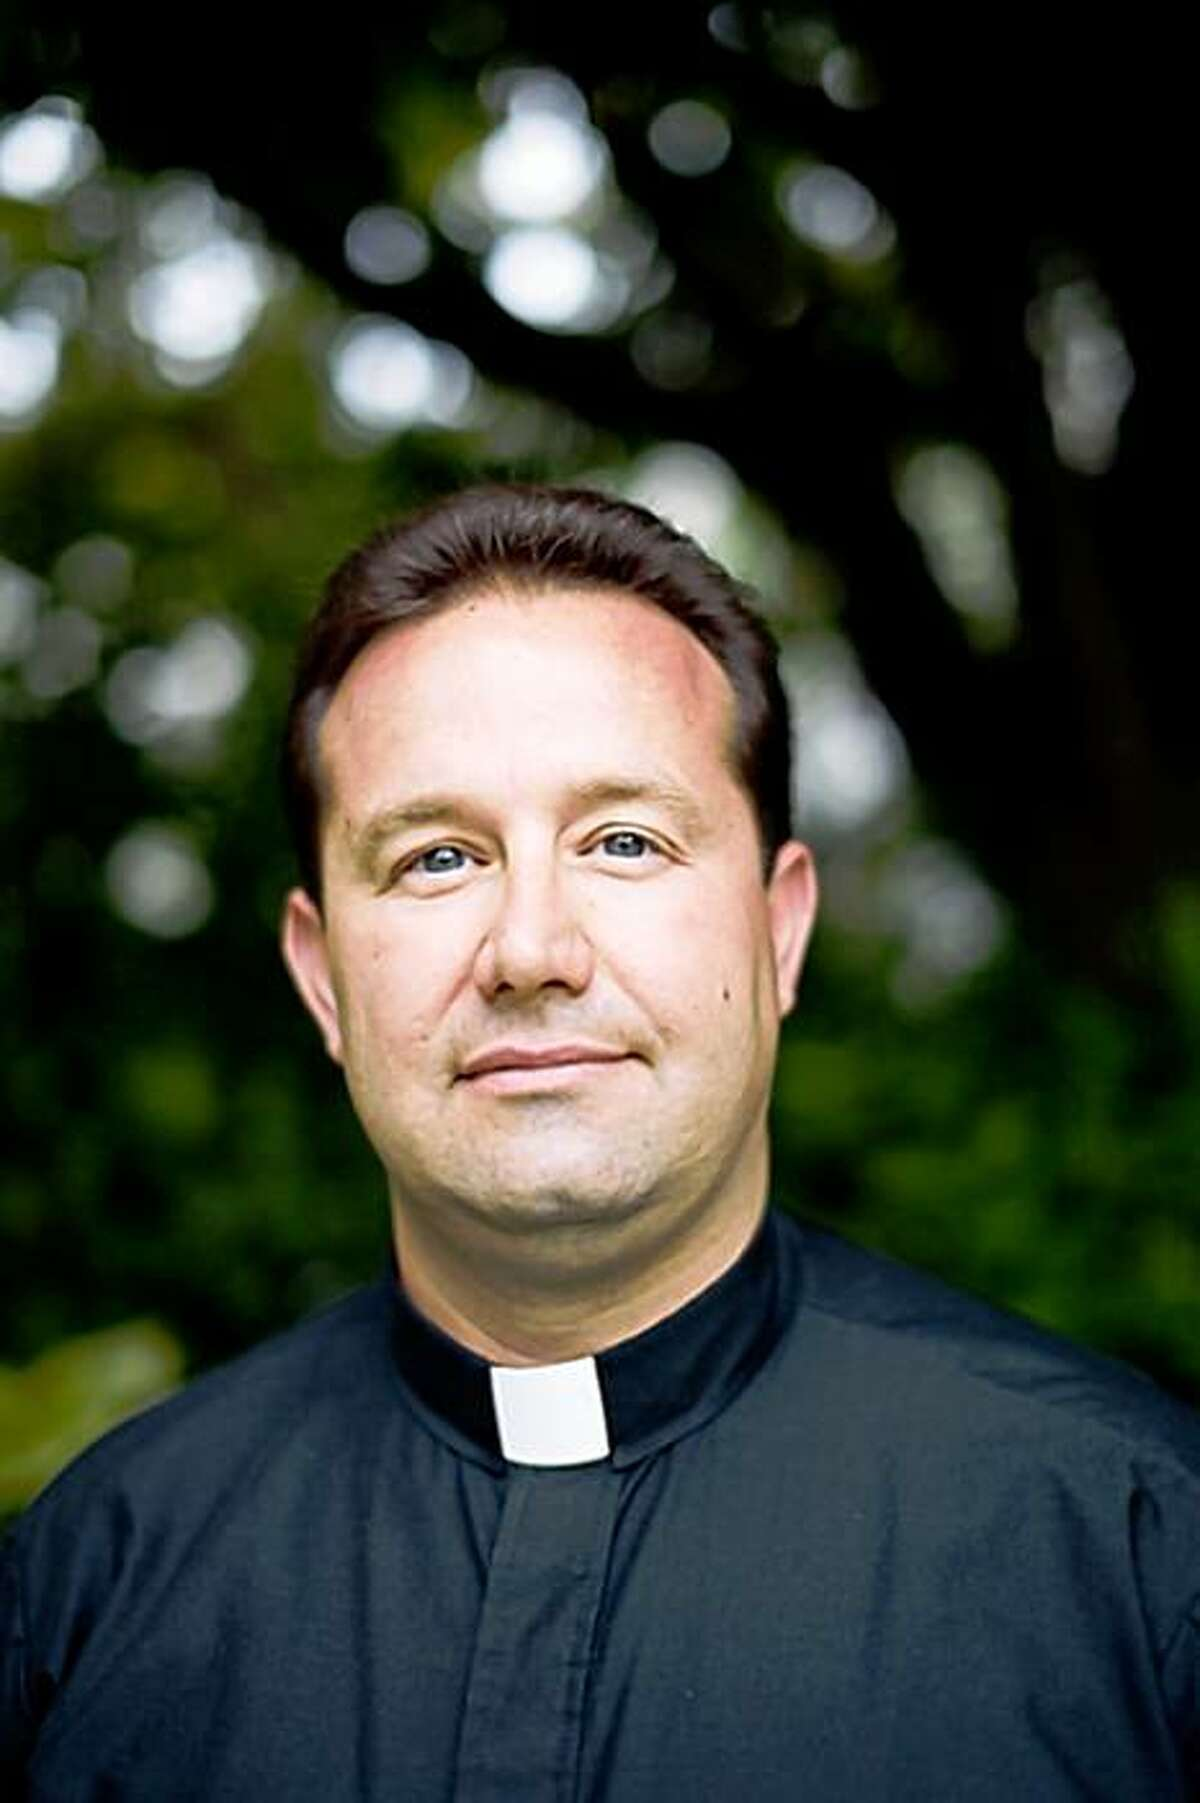 Rev. John Kirkley is an Oaklander who leads St. John the Evangelist in San Francisco's Mission District. He is a finalist to be a bishop in the Diocese of Los Angeles. If elected, he would be only the second openly gay or lesbian bishop in the Episcopal Church.